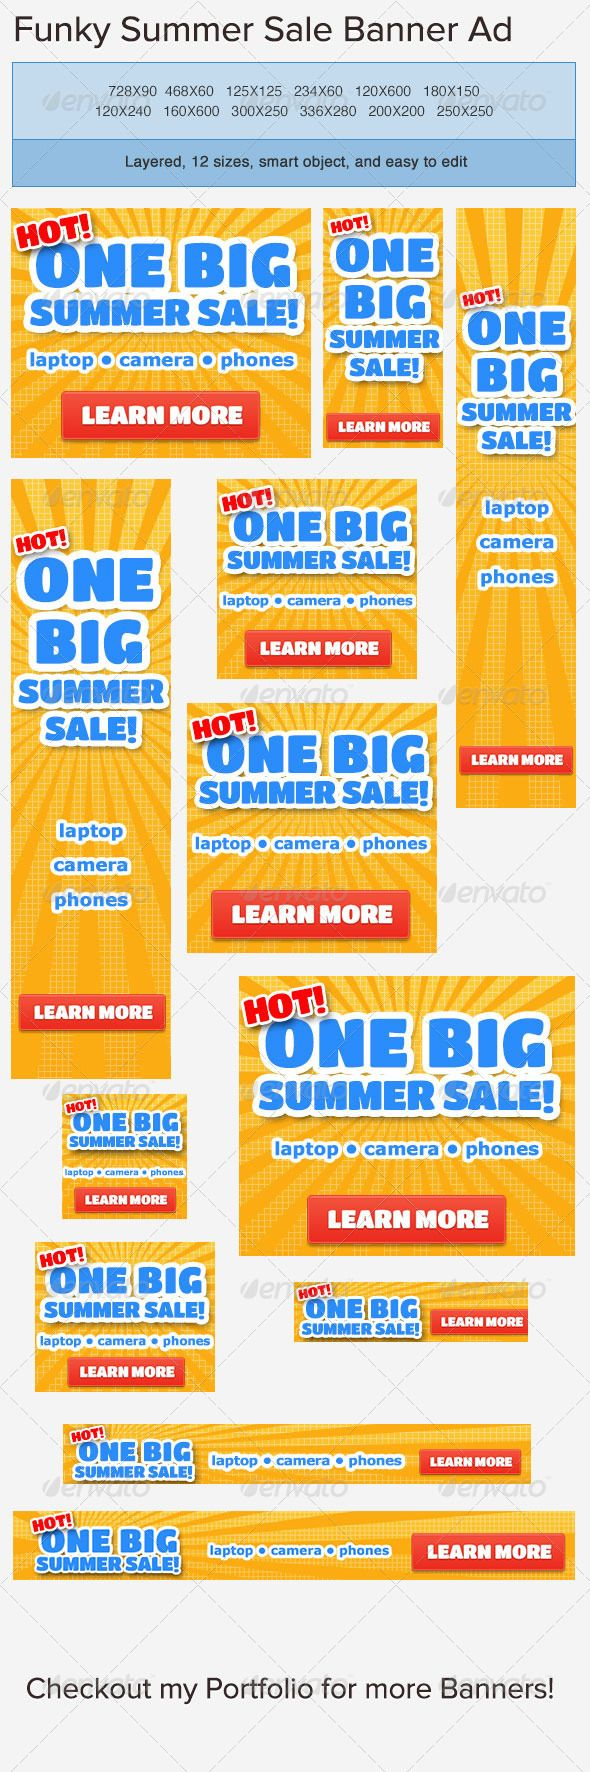 best images about ads banner template graphicriver on 17 best images about ads banner template graphicriver banner summer and fonts